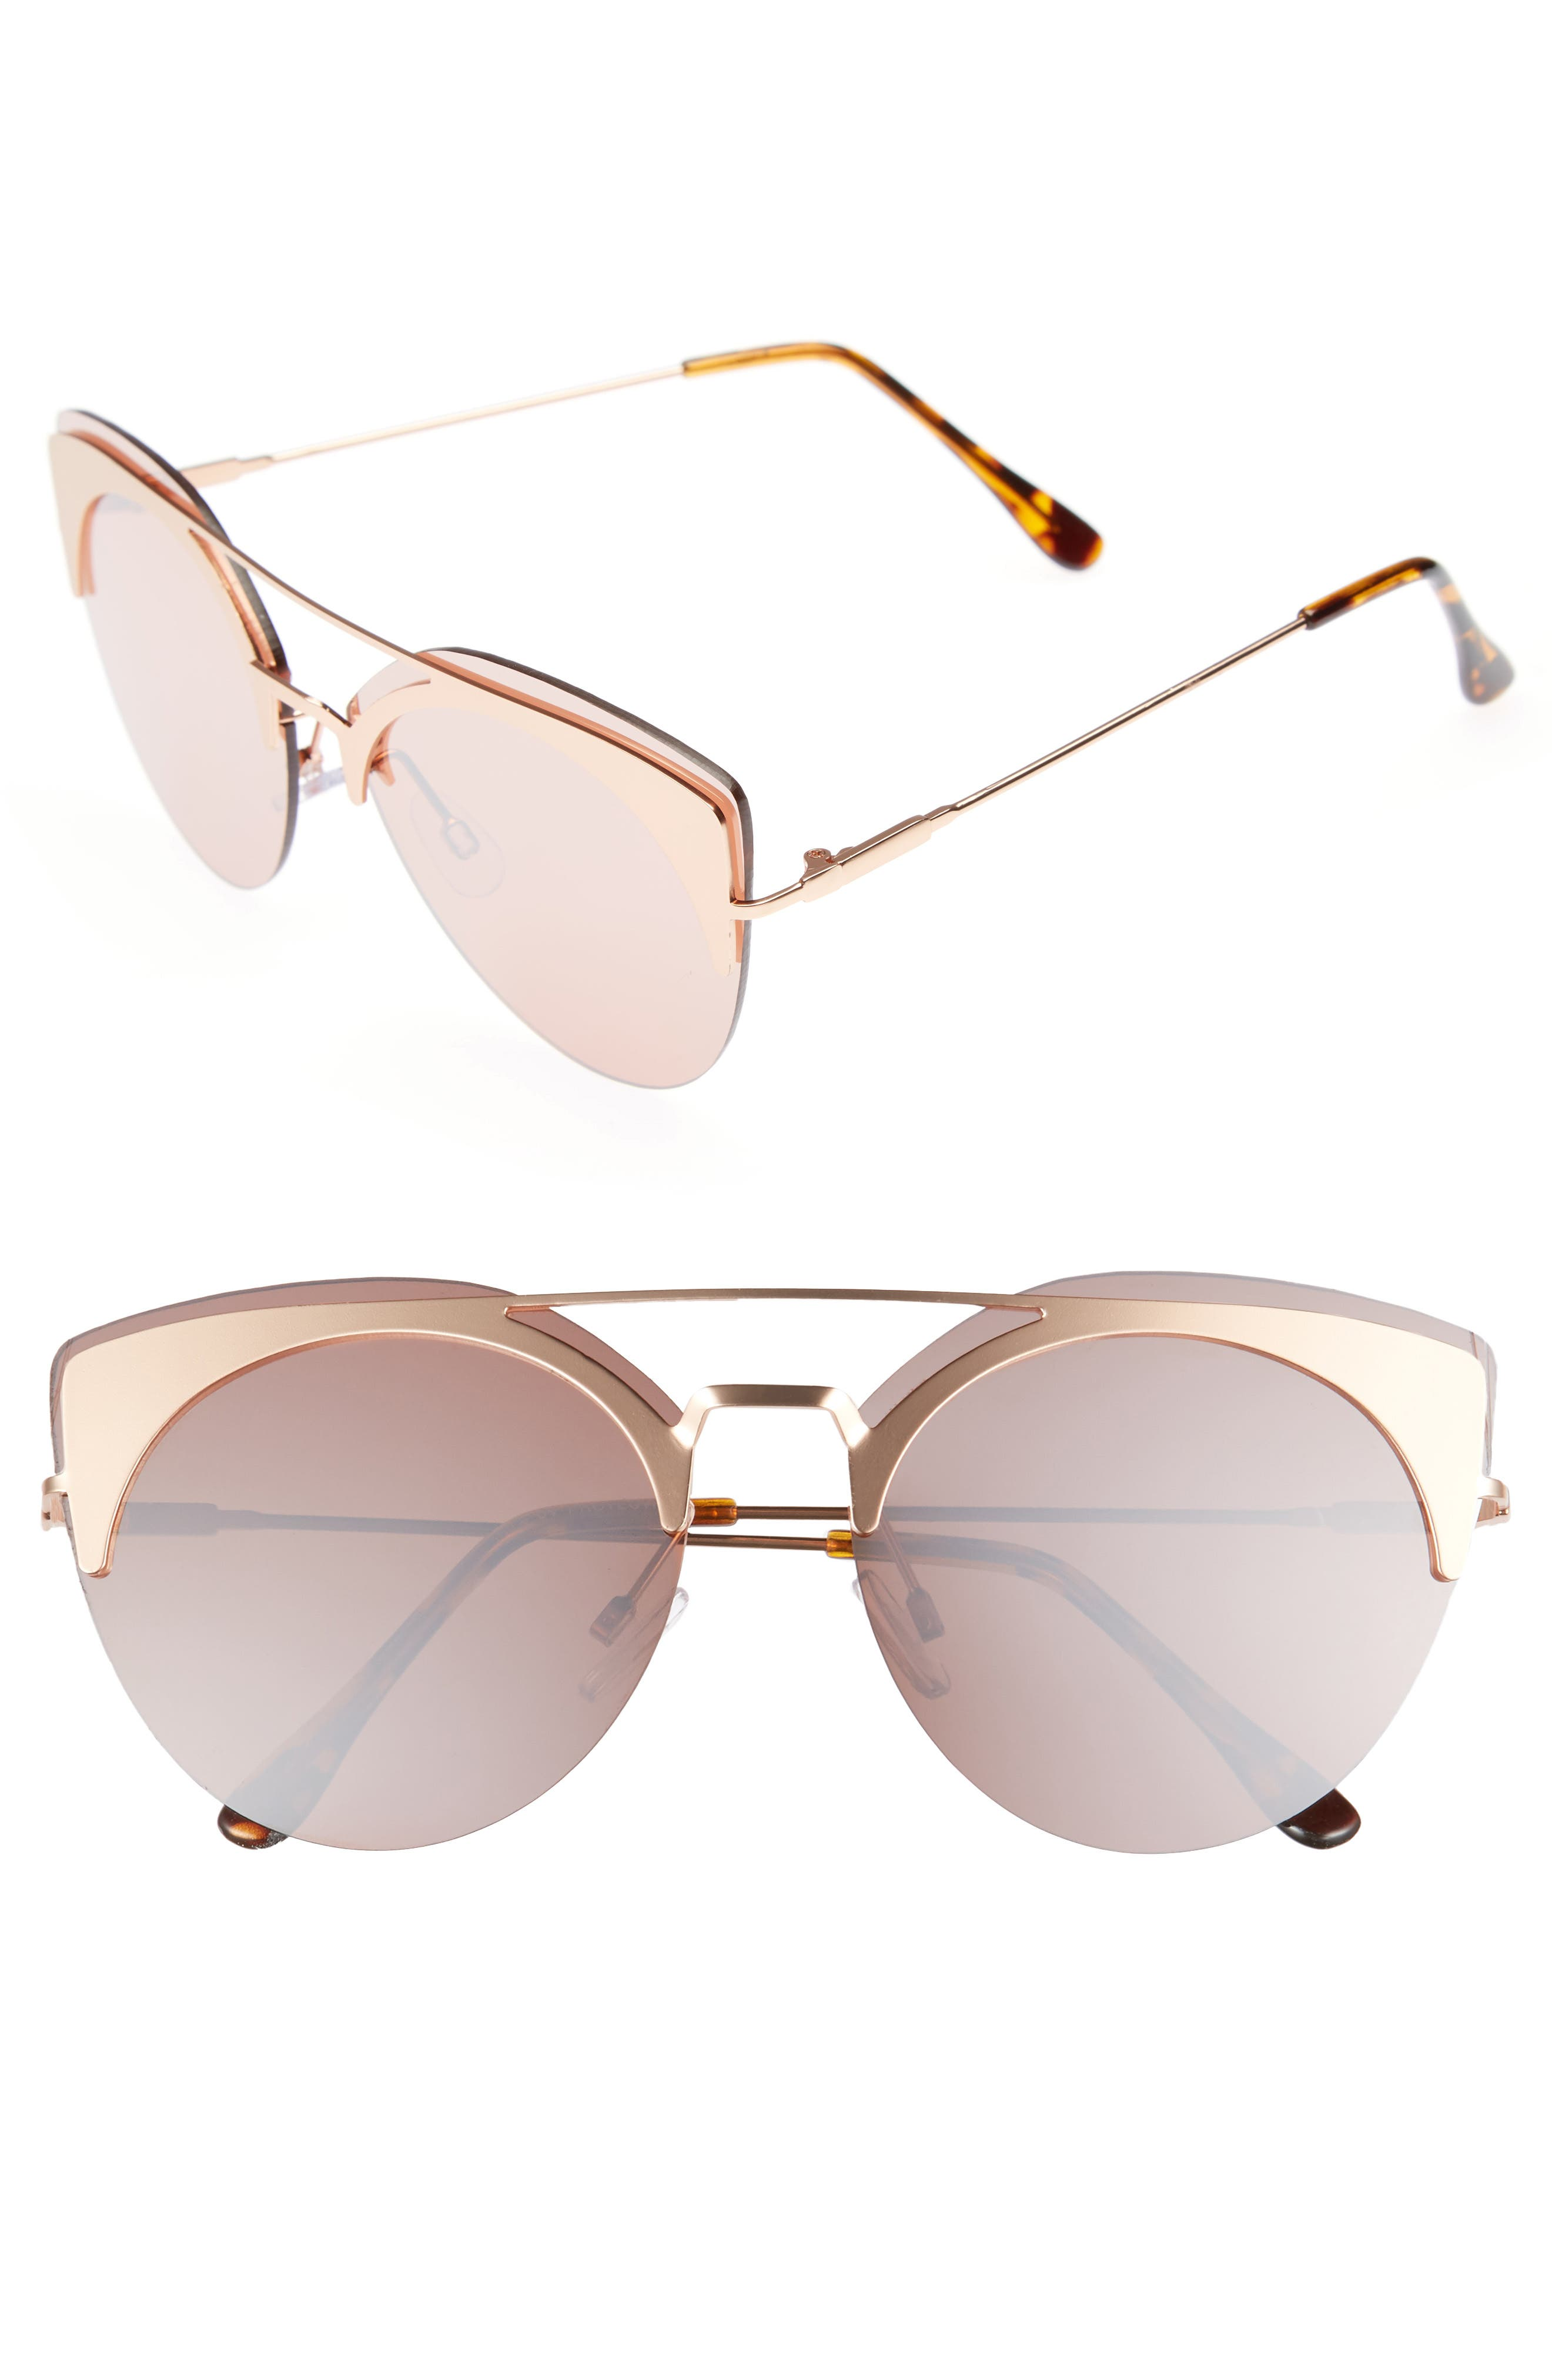 54mm Round Sunglasses,                         Main,                         color, Gold/ Brown